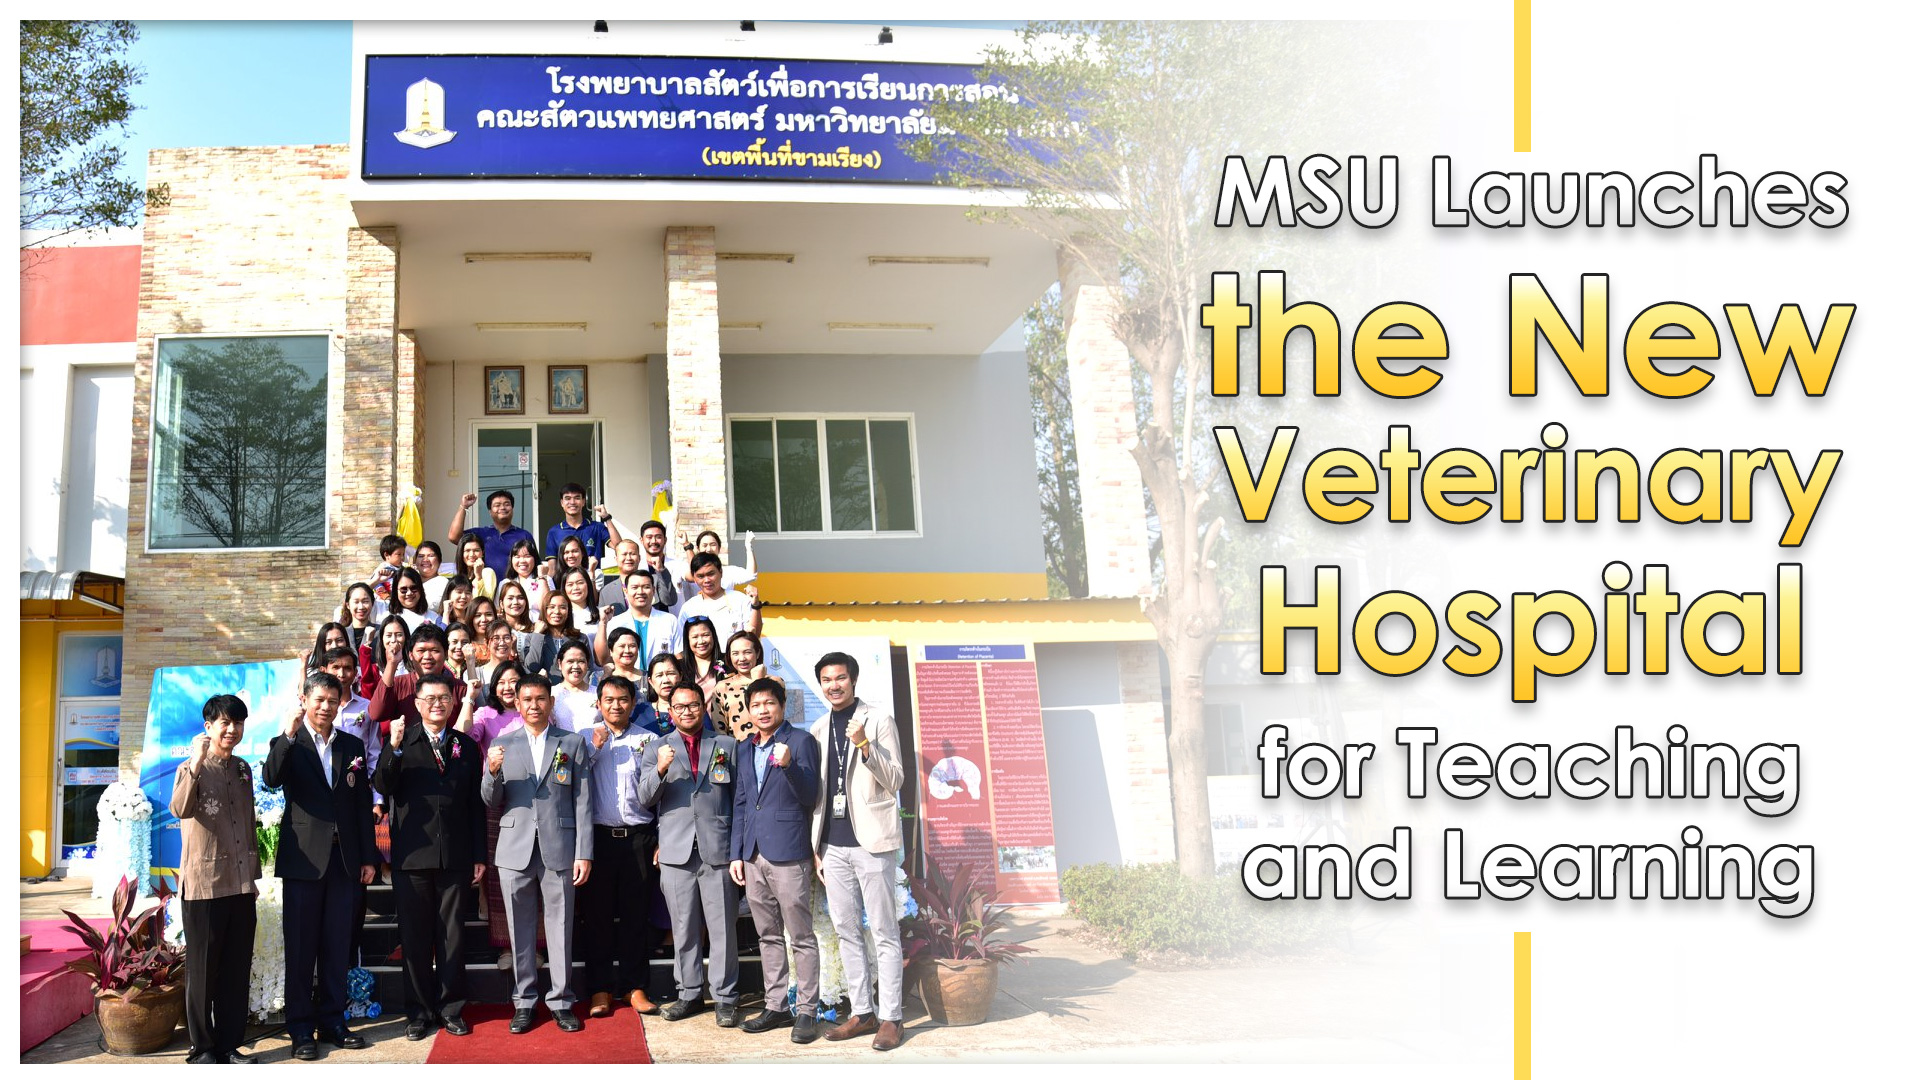 MSU Launches the New Veterinary Hospital for Teaching and Learning